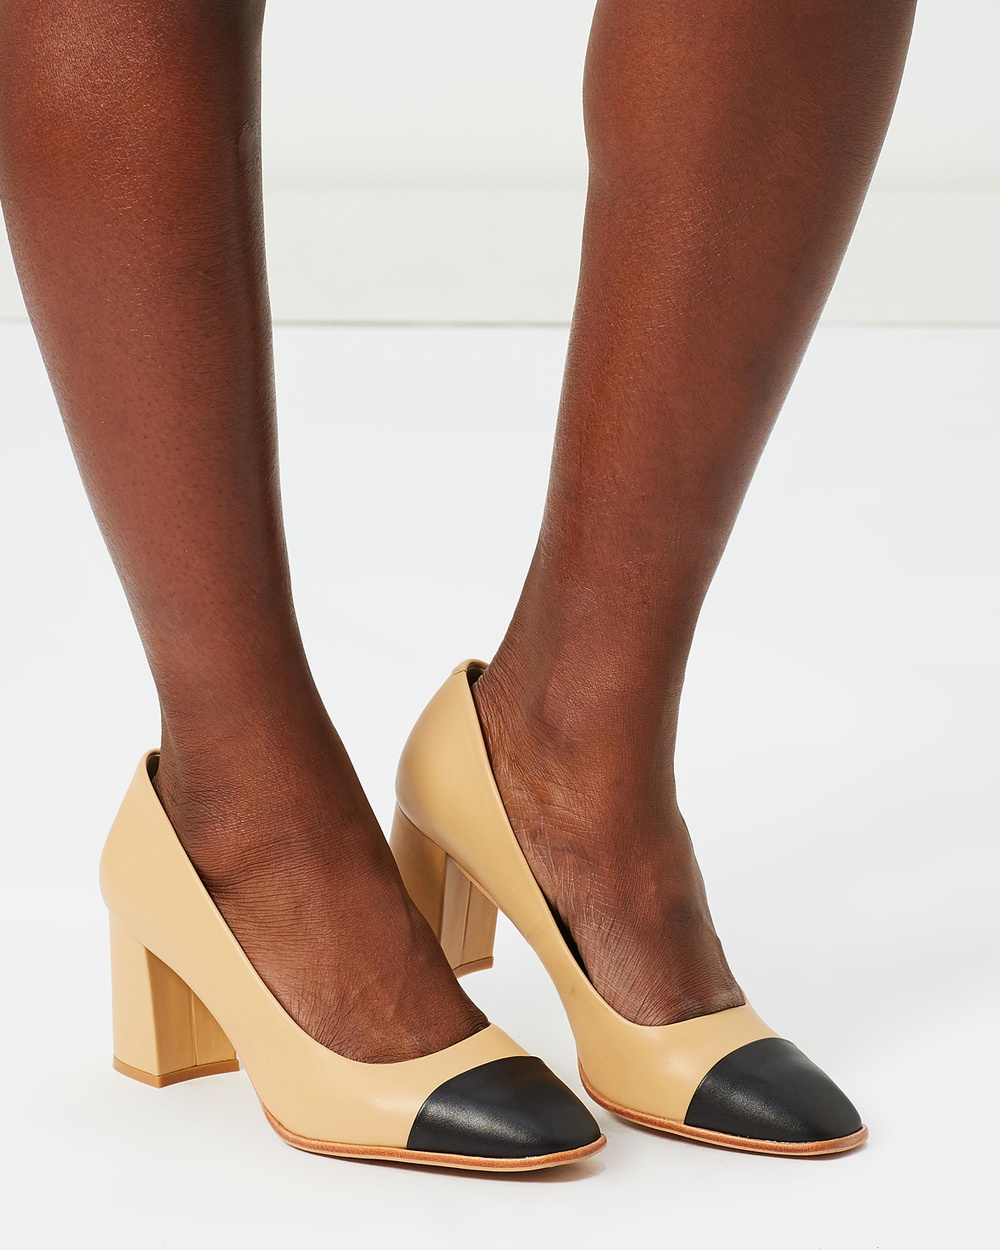 Shoes of Prey ICONIC EXCLUSIVE Vista Leather Pumps All Pumps Camel & Black ICONIC EXCLUSIVE Vista Leather Pumps